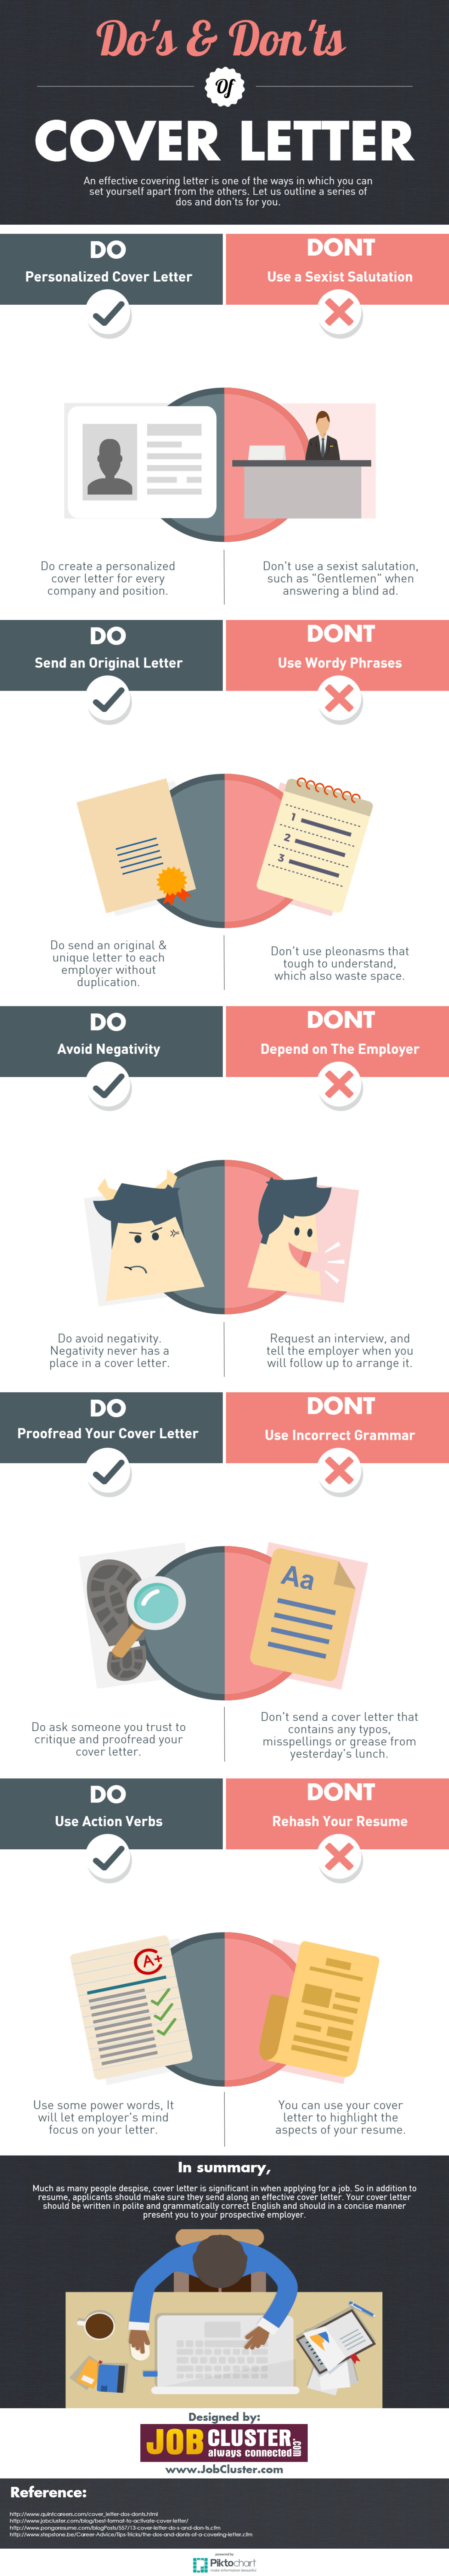 Cover Letter Dos And Donts For Job Seekers Infographic